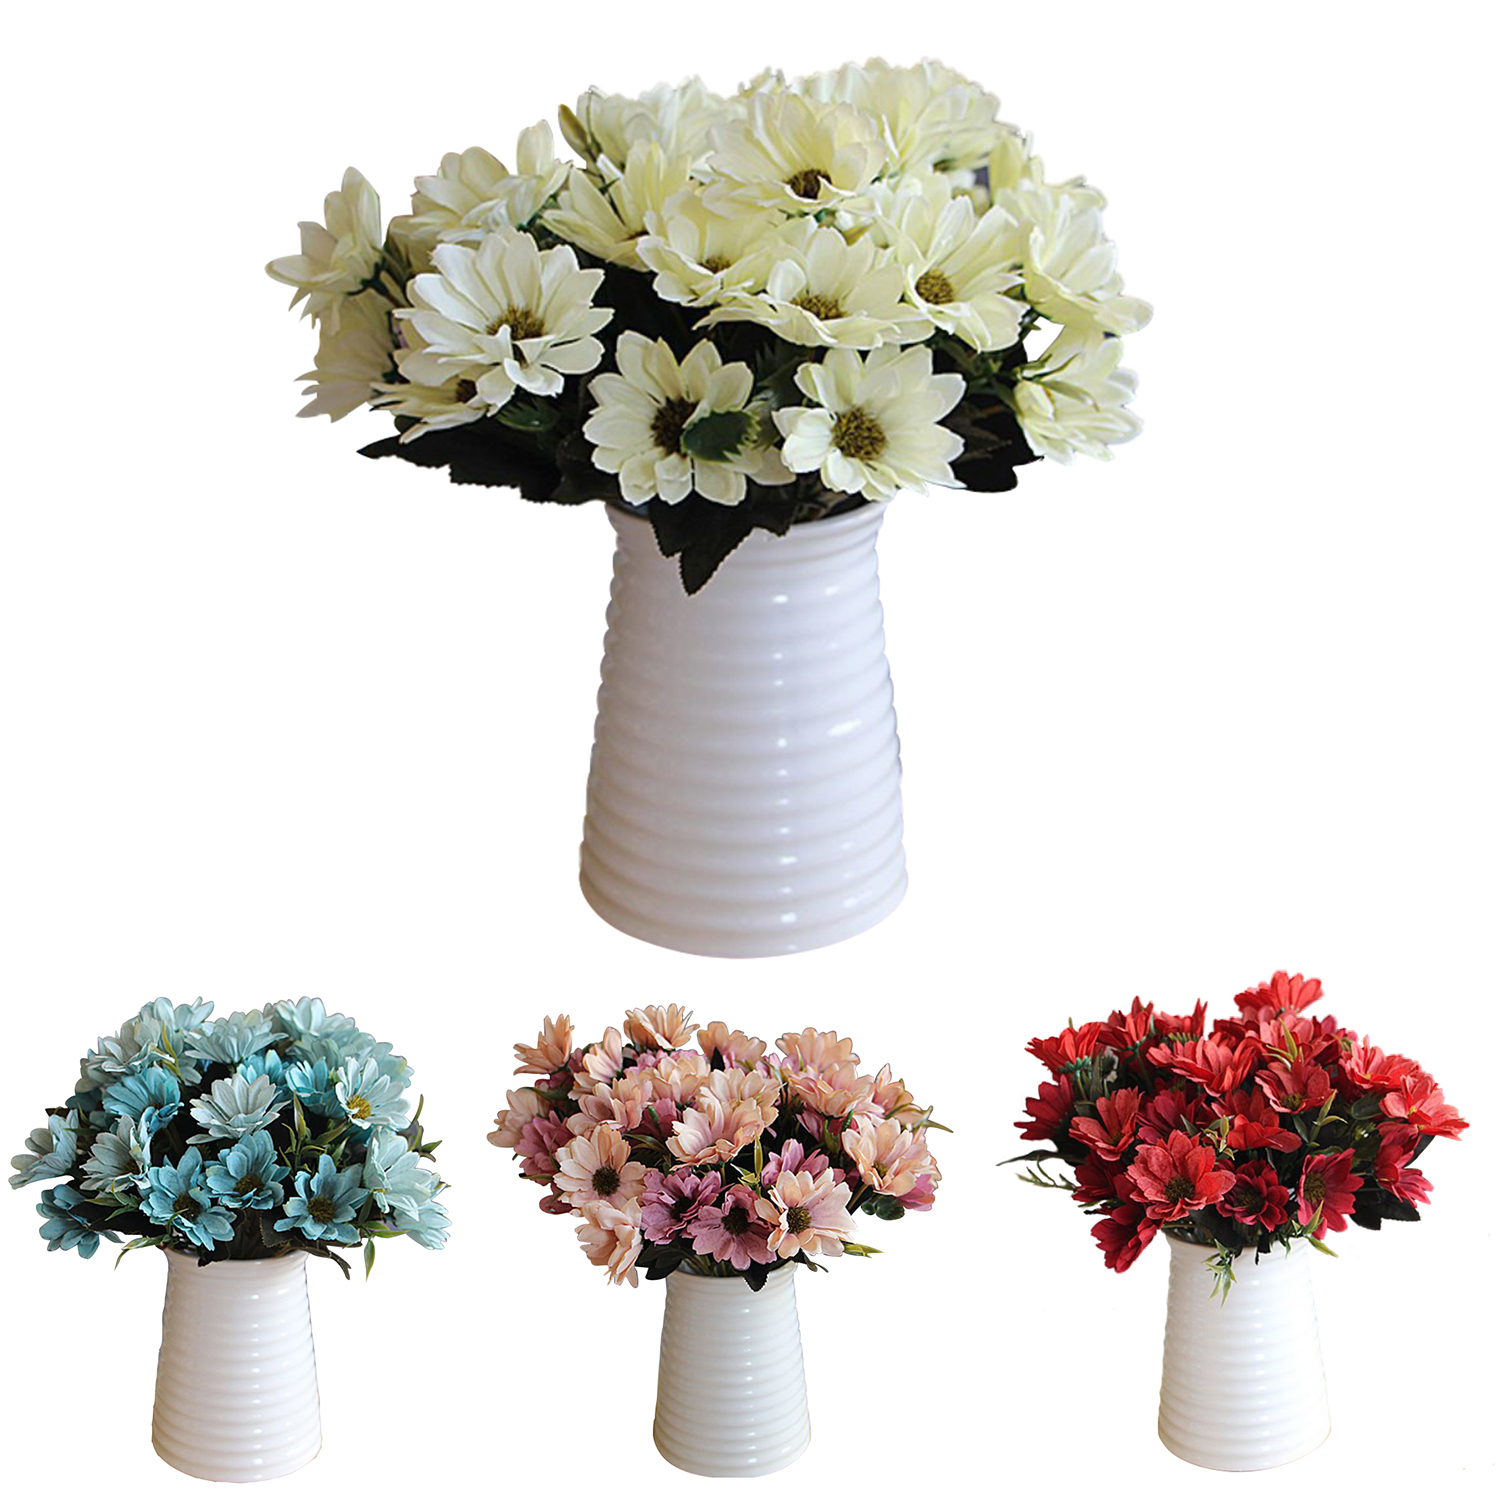 A Bunch Of Man Mad Bridal Daisy Flowers Fake Silk Bouquet Home Party